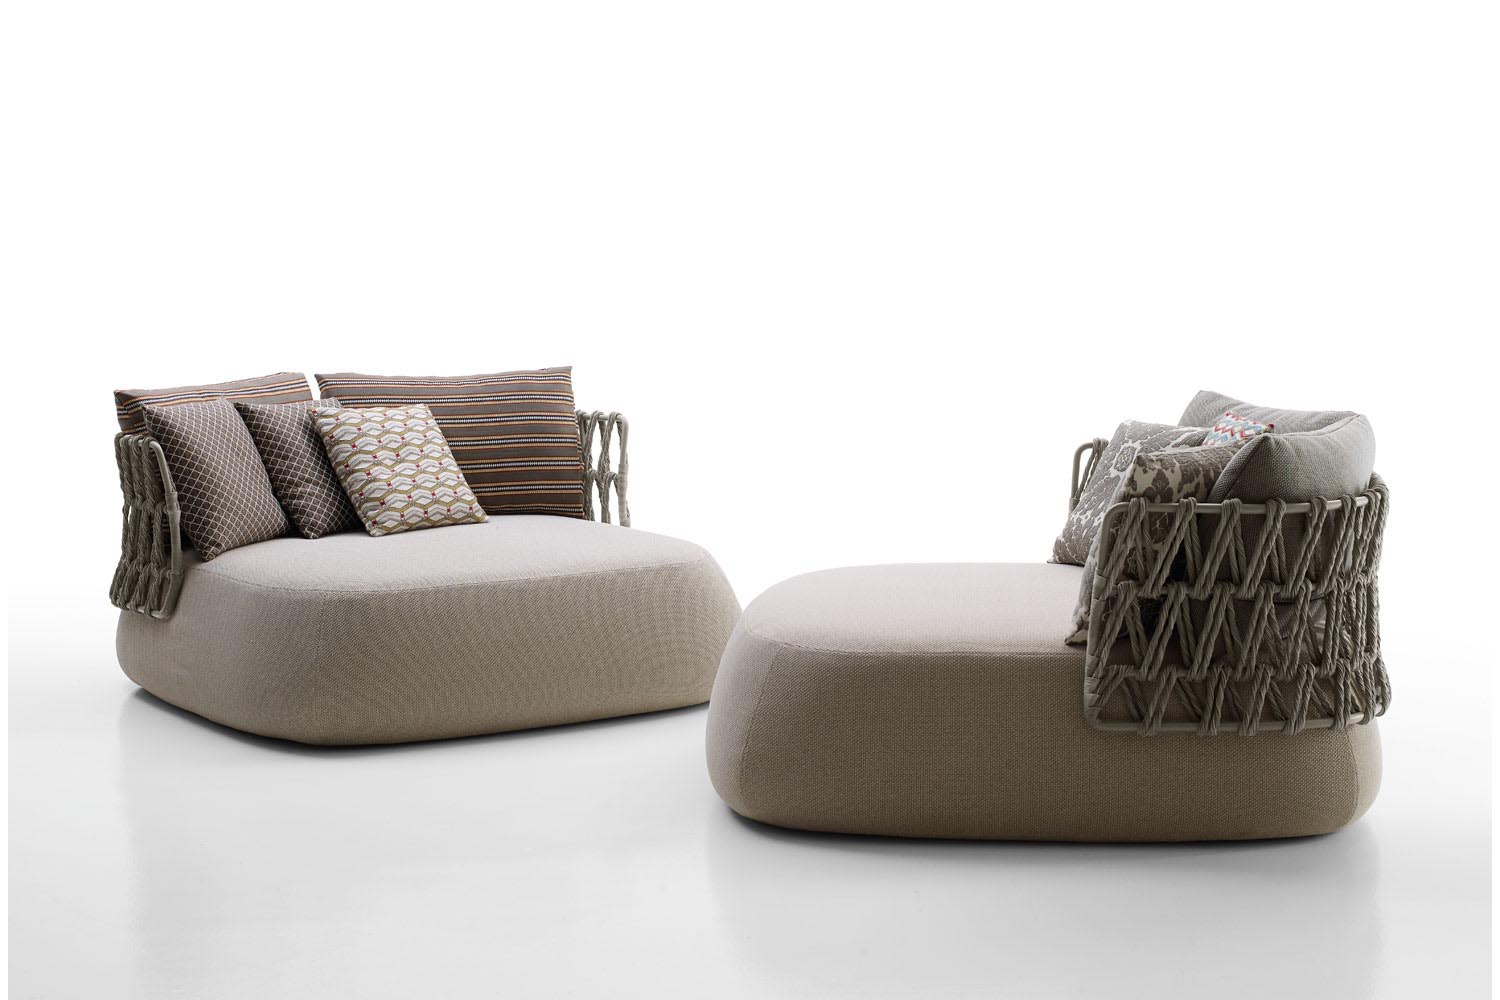 outdoor sofa singapore grey and yellow sets fat by patricia urquiola for b andb italia